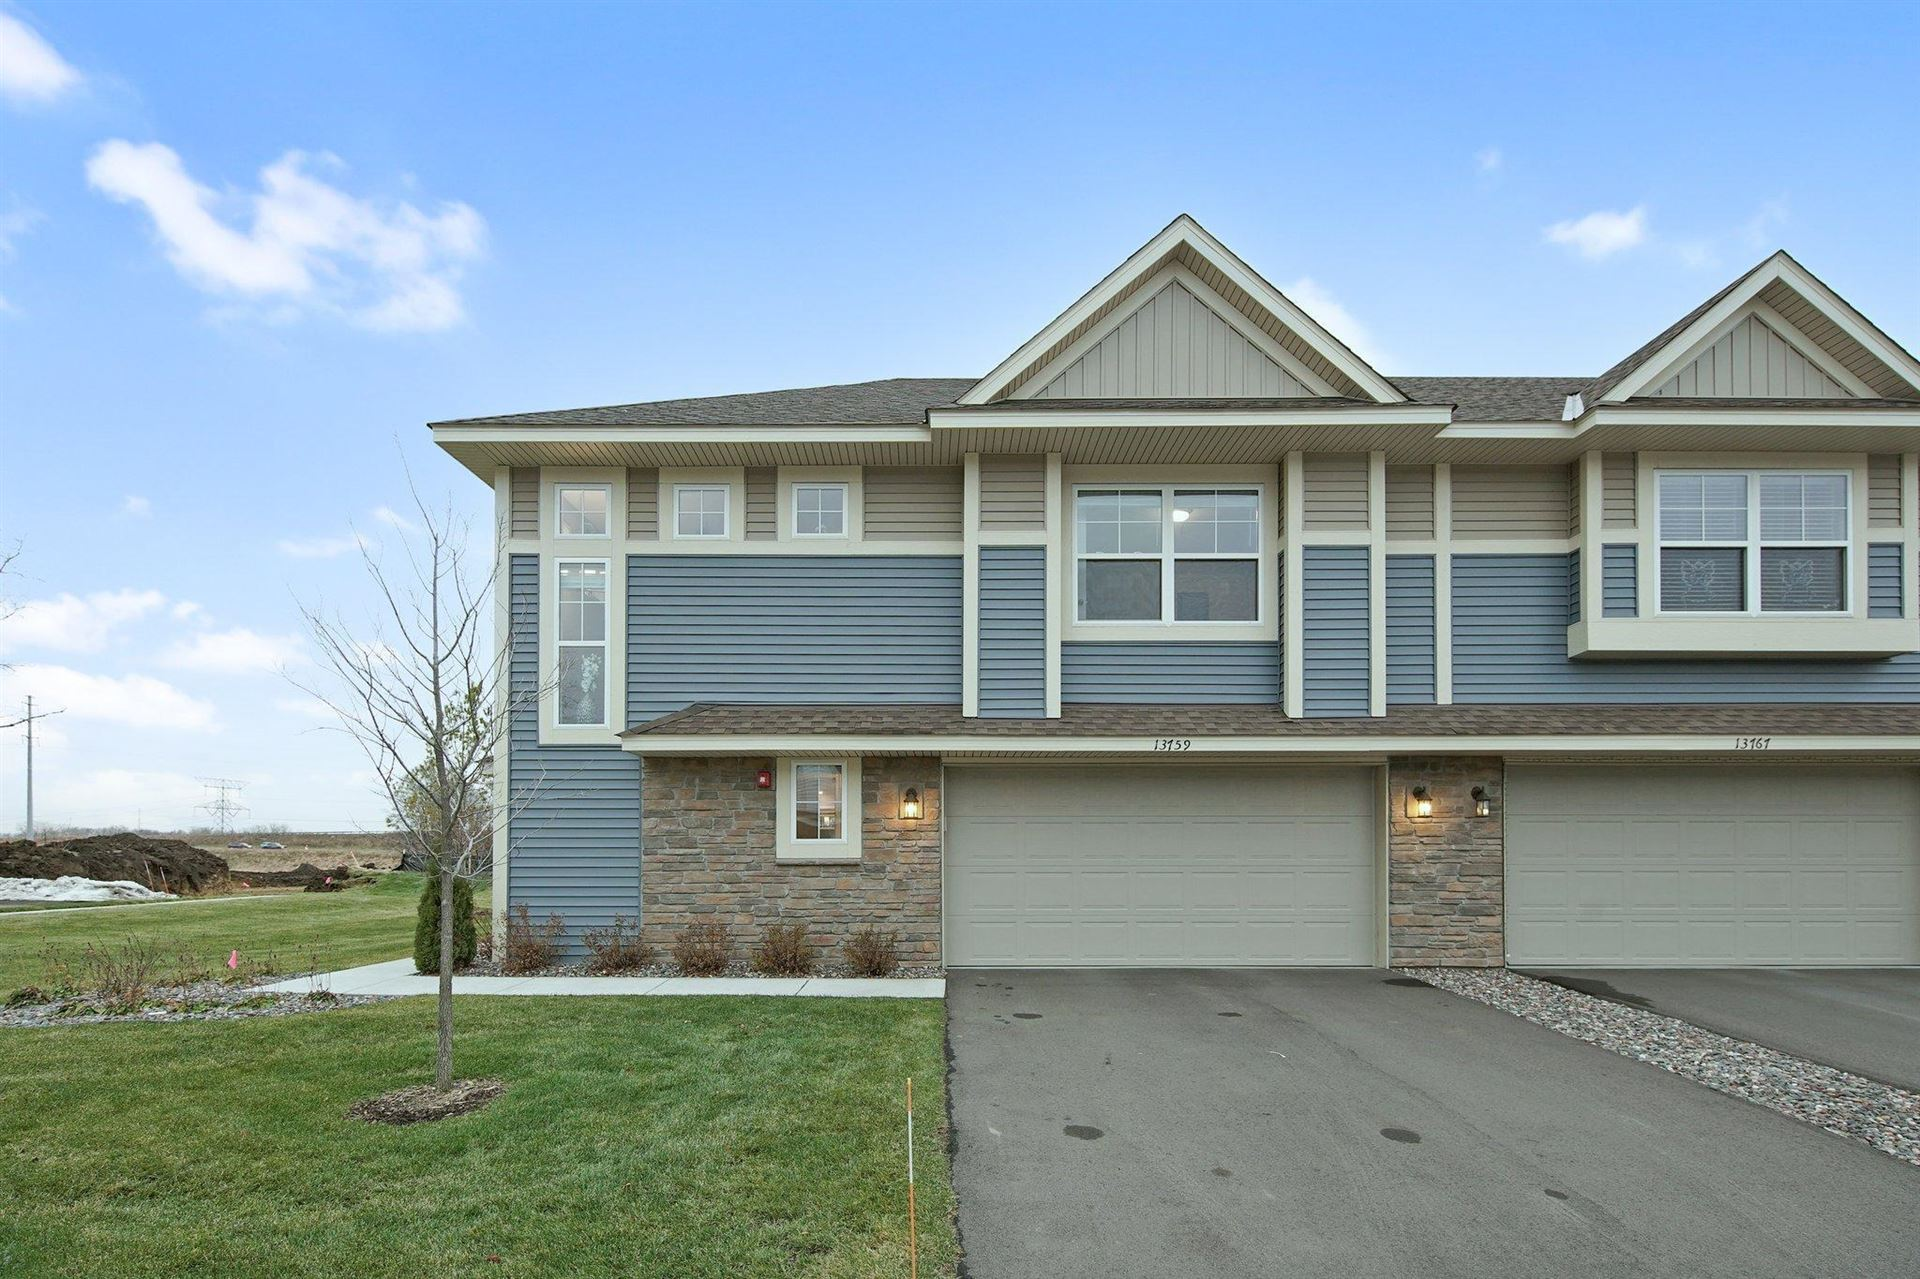 13759 102nd Place N, Maple Grove, MN 55369 - MLS#: 5688257